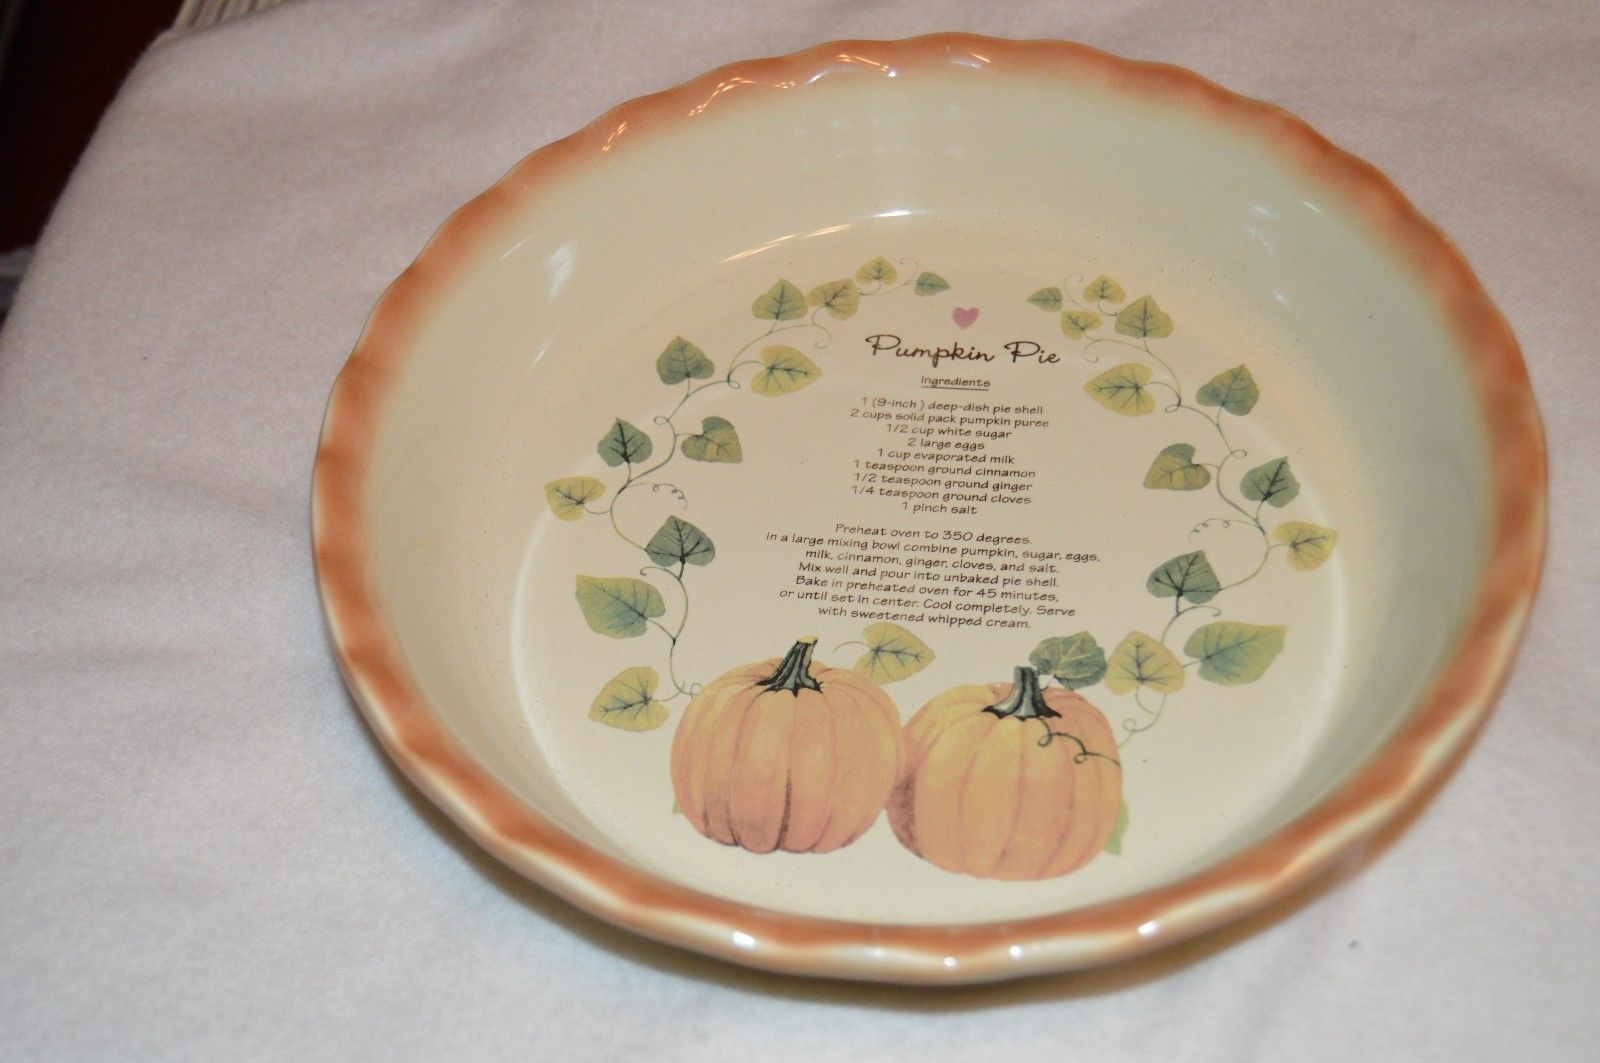 Ceramic Pumpkin Pie Dish Plate with Recipe 10\  Collectible Nantucket Decorative | eBay & Ceramic Pumpkin Pie Dish/Plate With Recipe 10"|1600|1063|?|b2b62cfb1eb0db106ece52a7fd0af381|False|UNLIKELY|0.3619650602340698